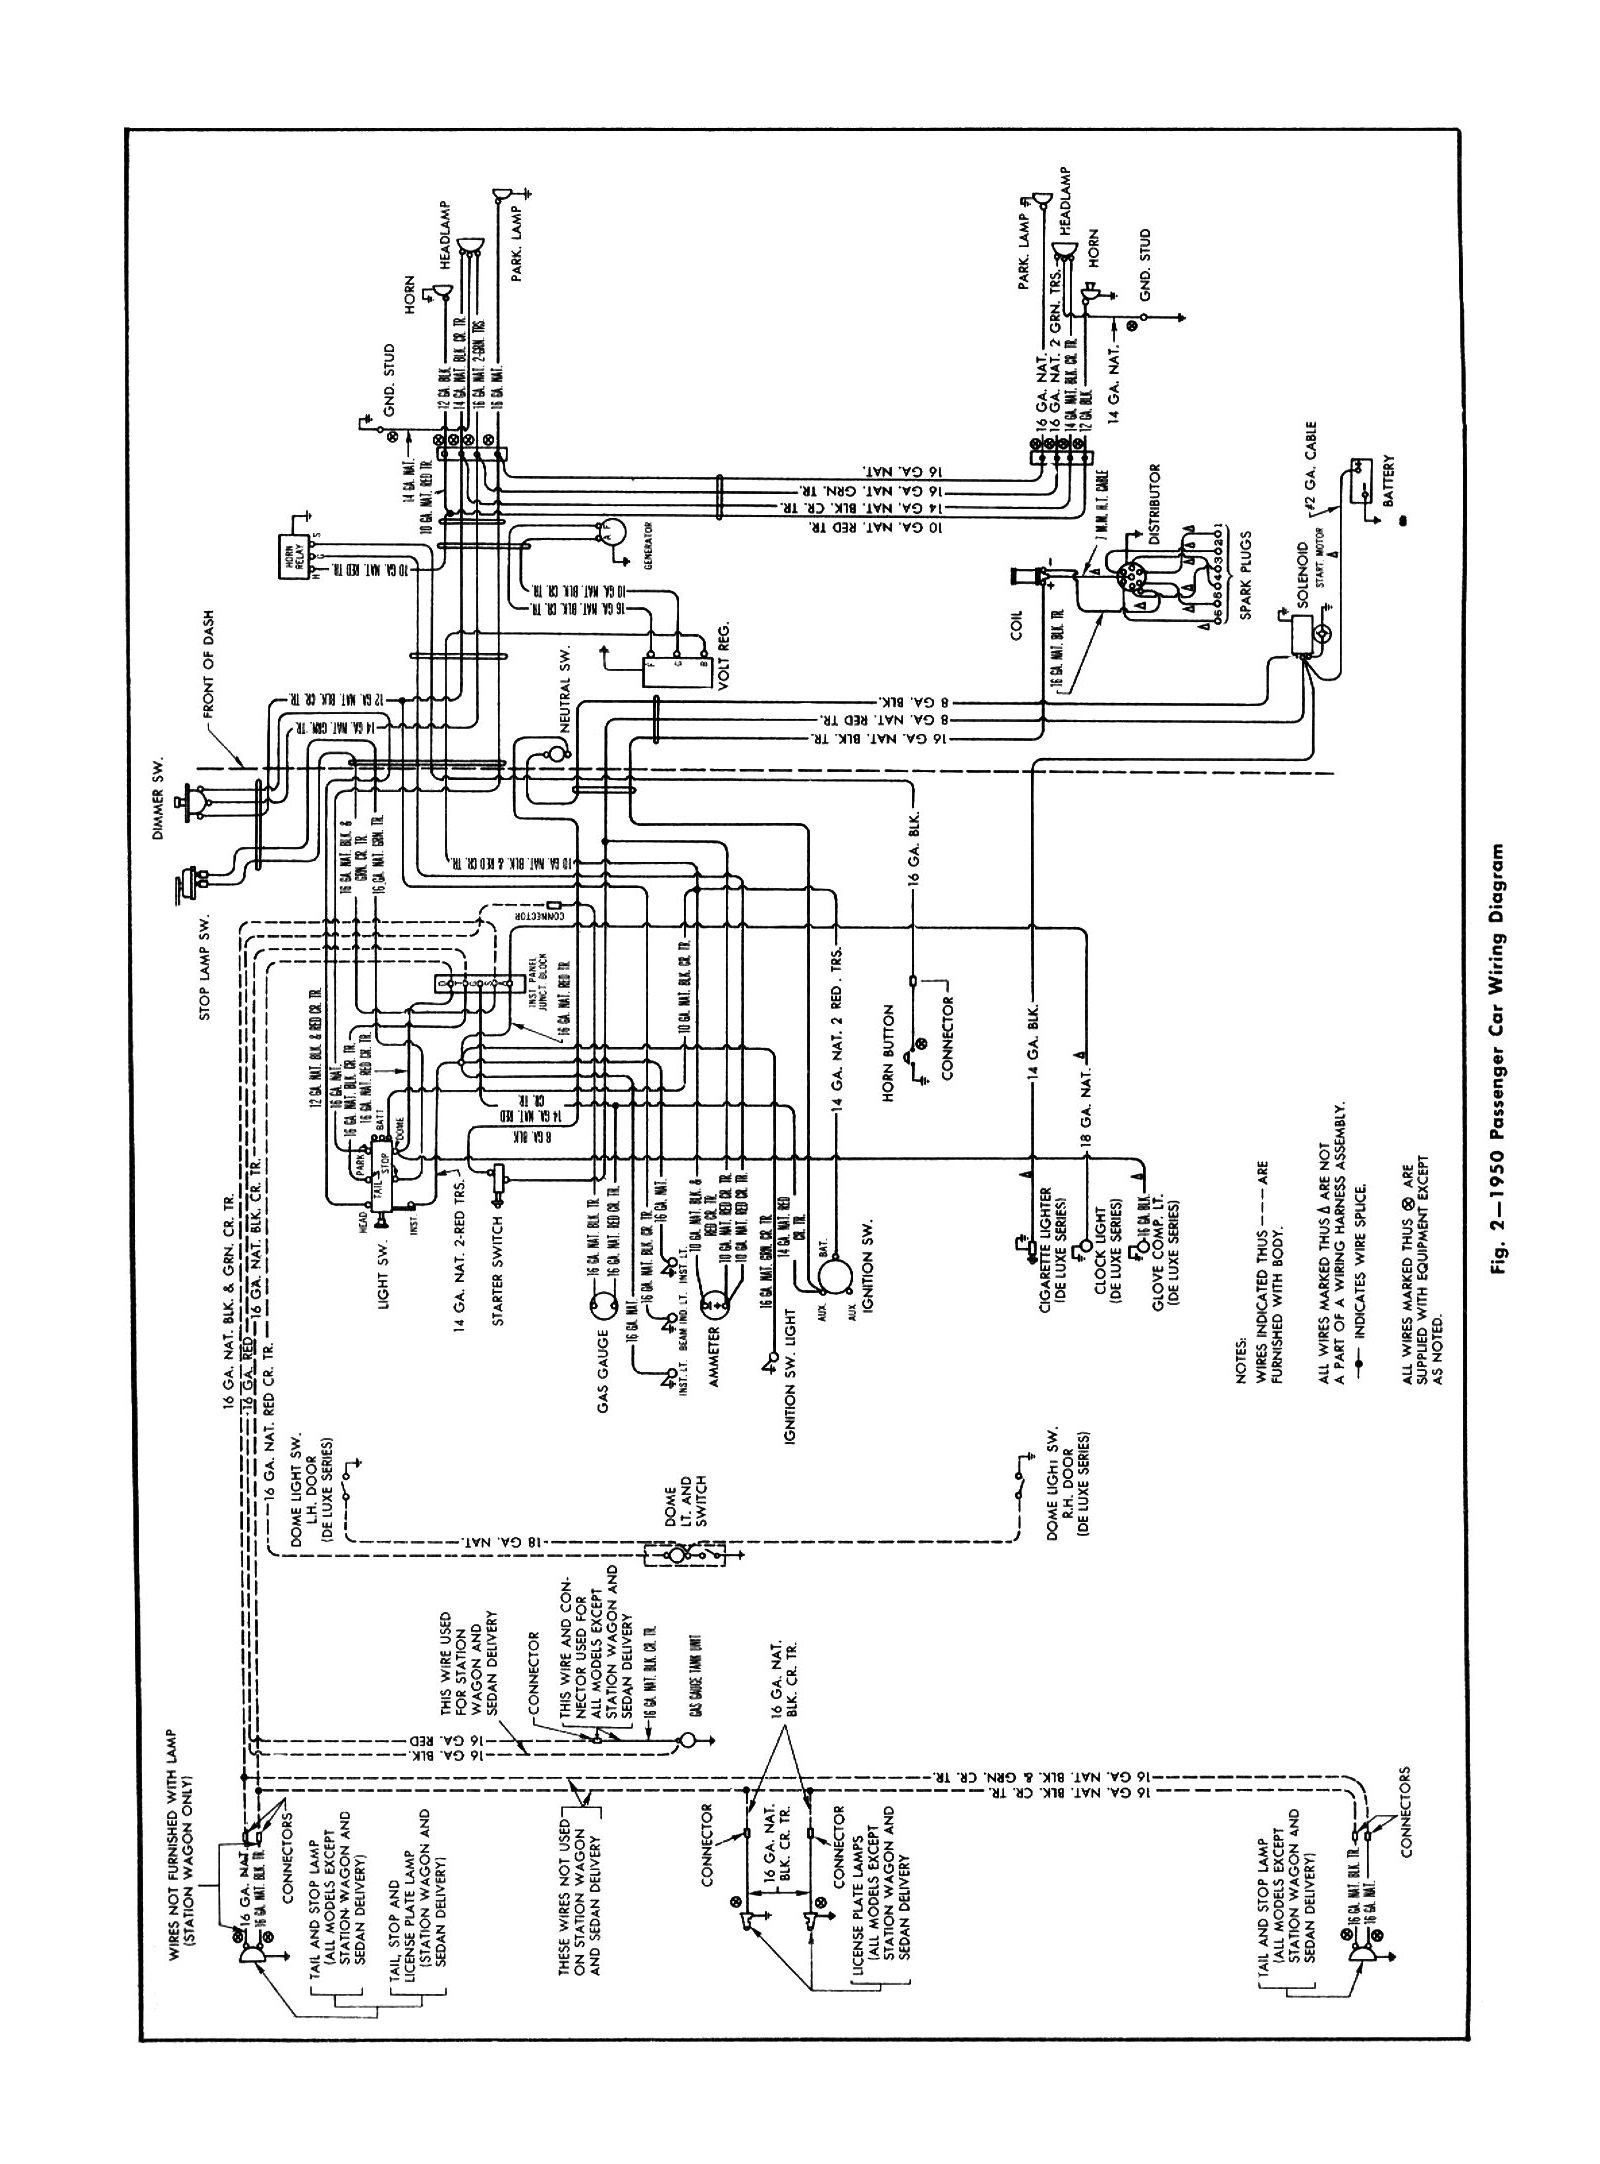 Auto Electrical Wiring Diagram Free Download